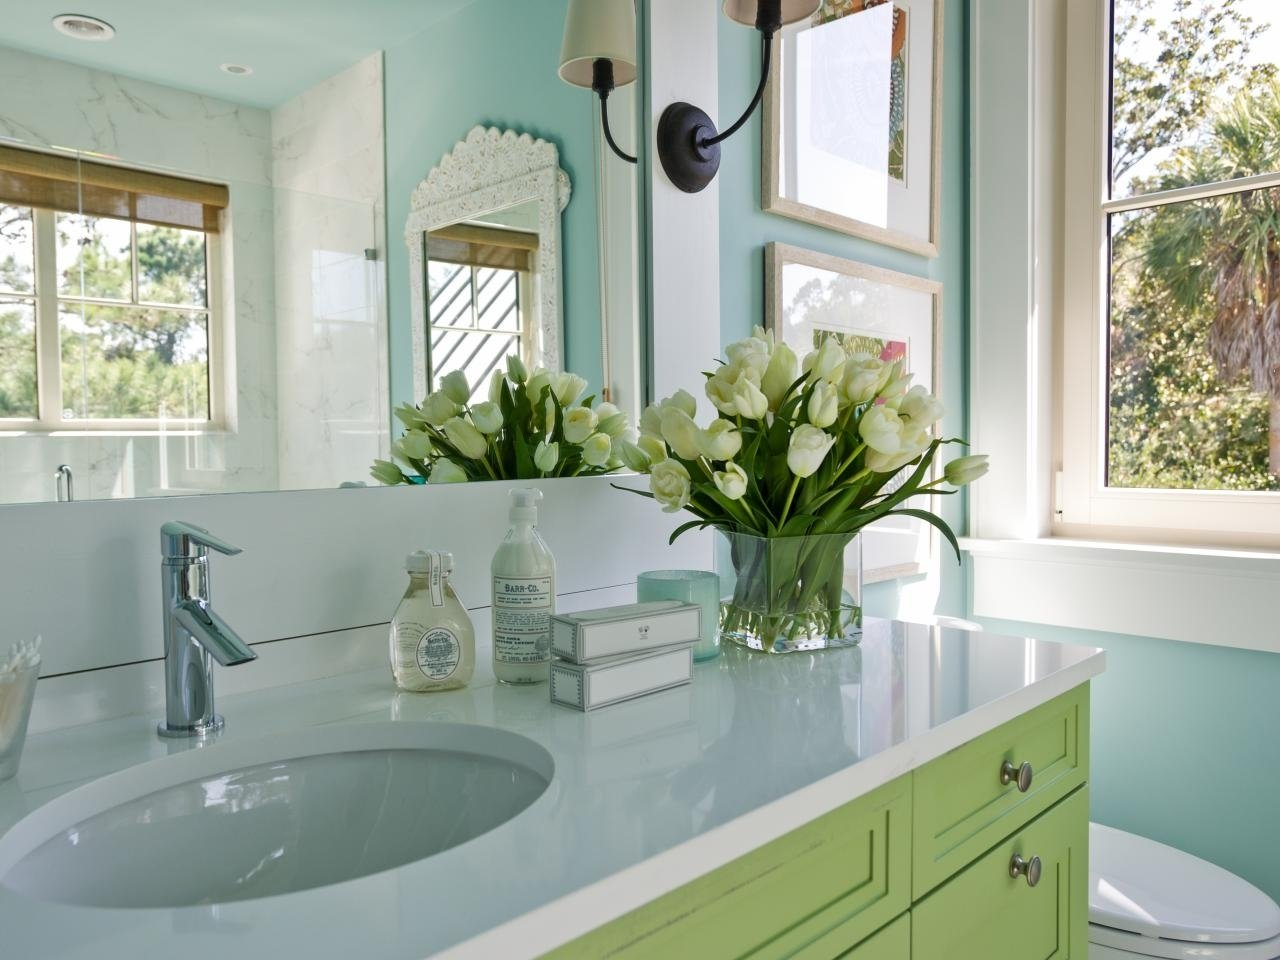 10 Stylish Ideas For Decorating A Bathroom wonderful small bathroom decorating ideas hgtv of bathrooms pictures 2020